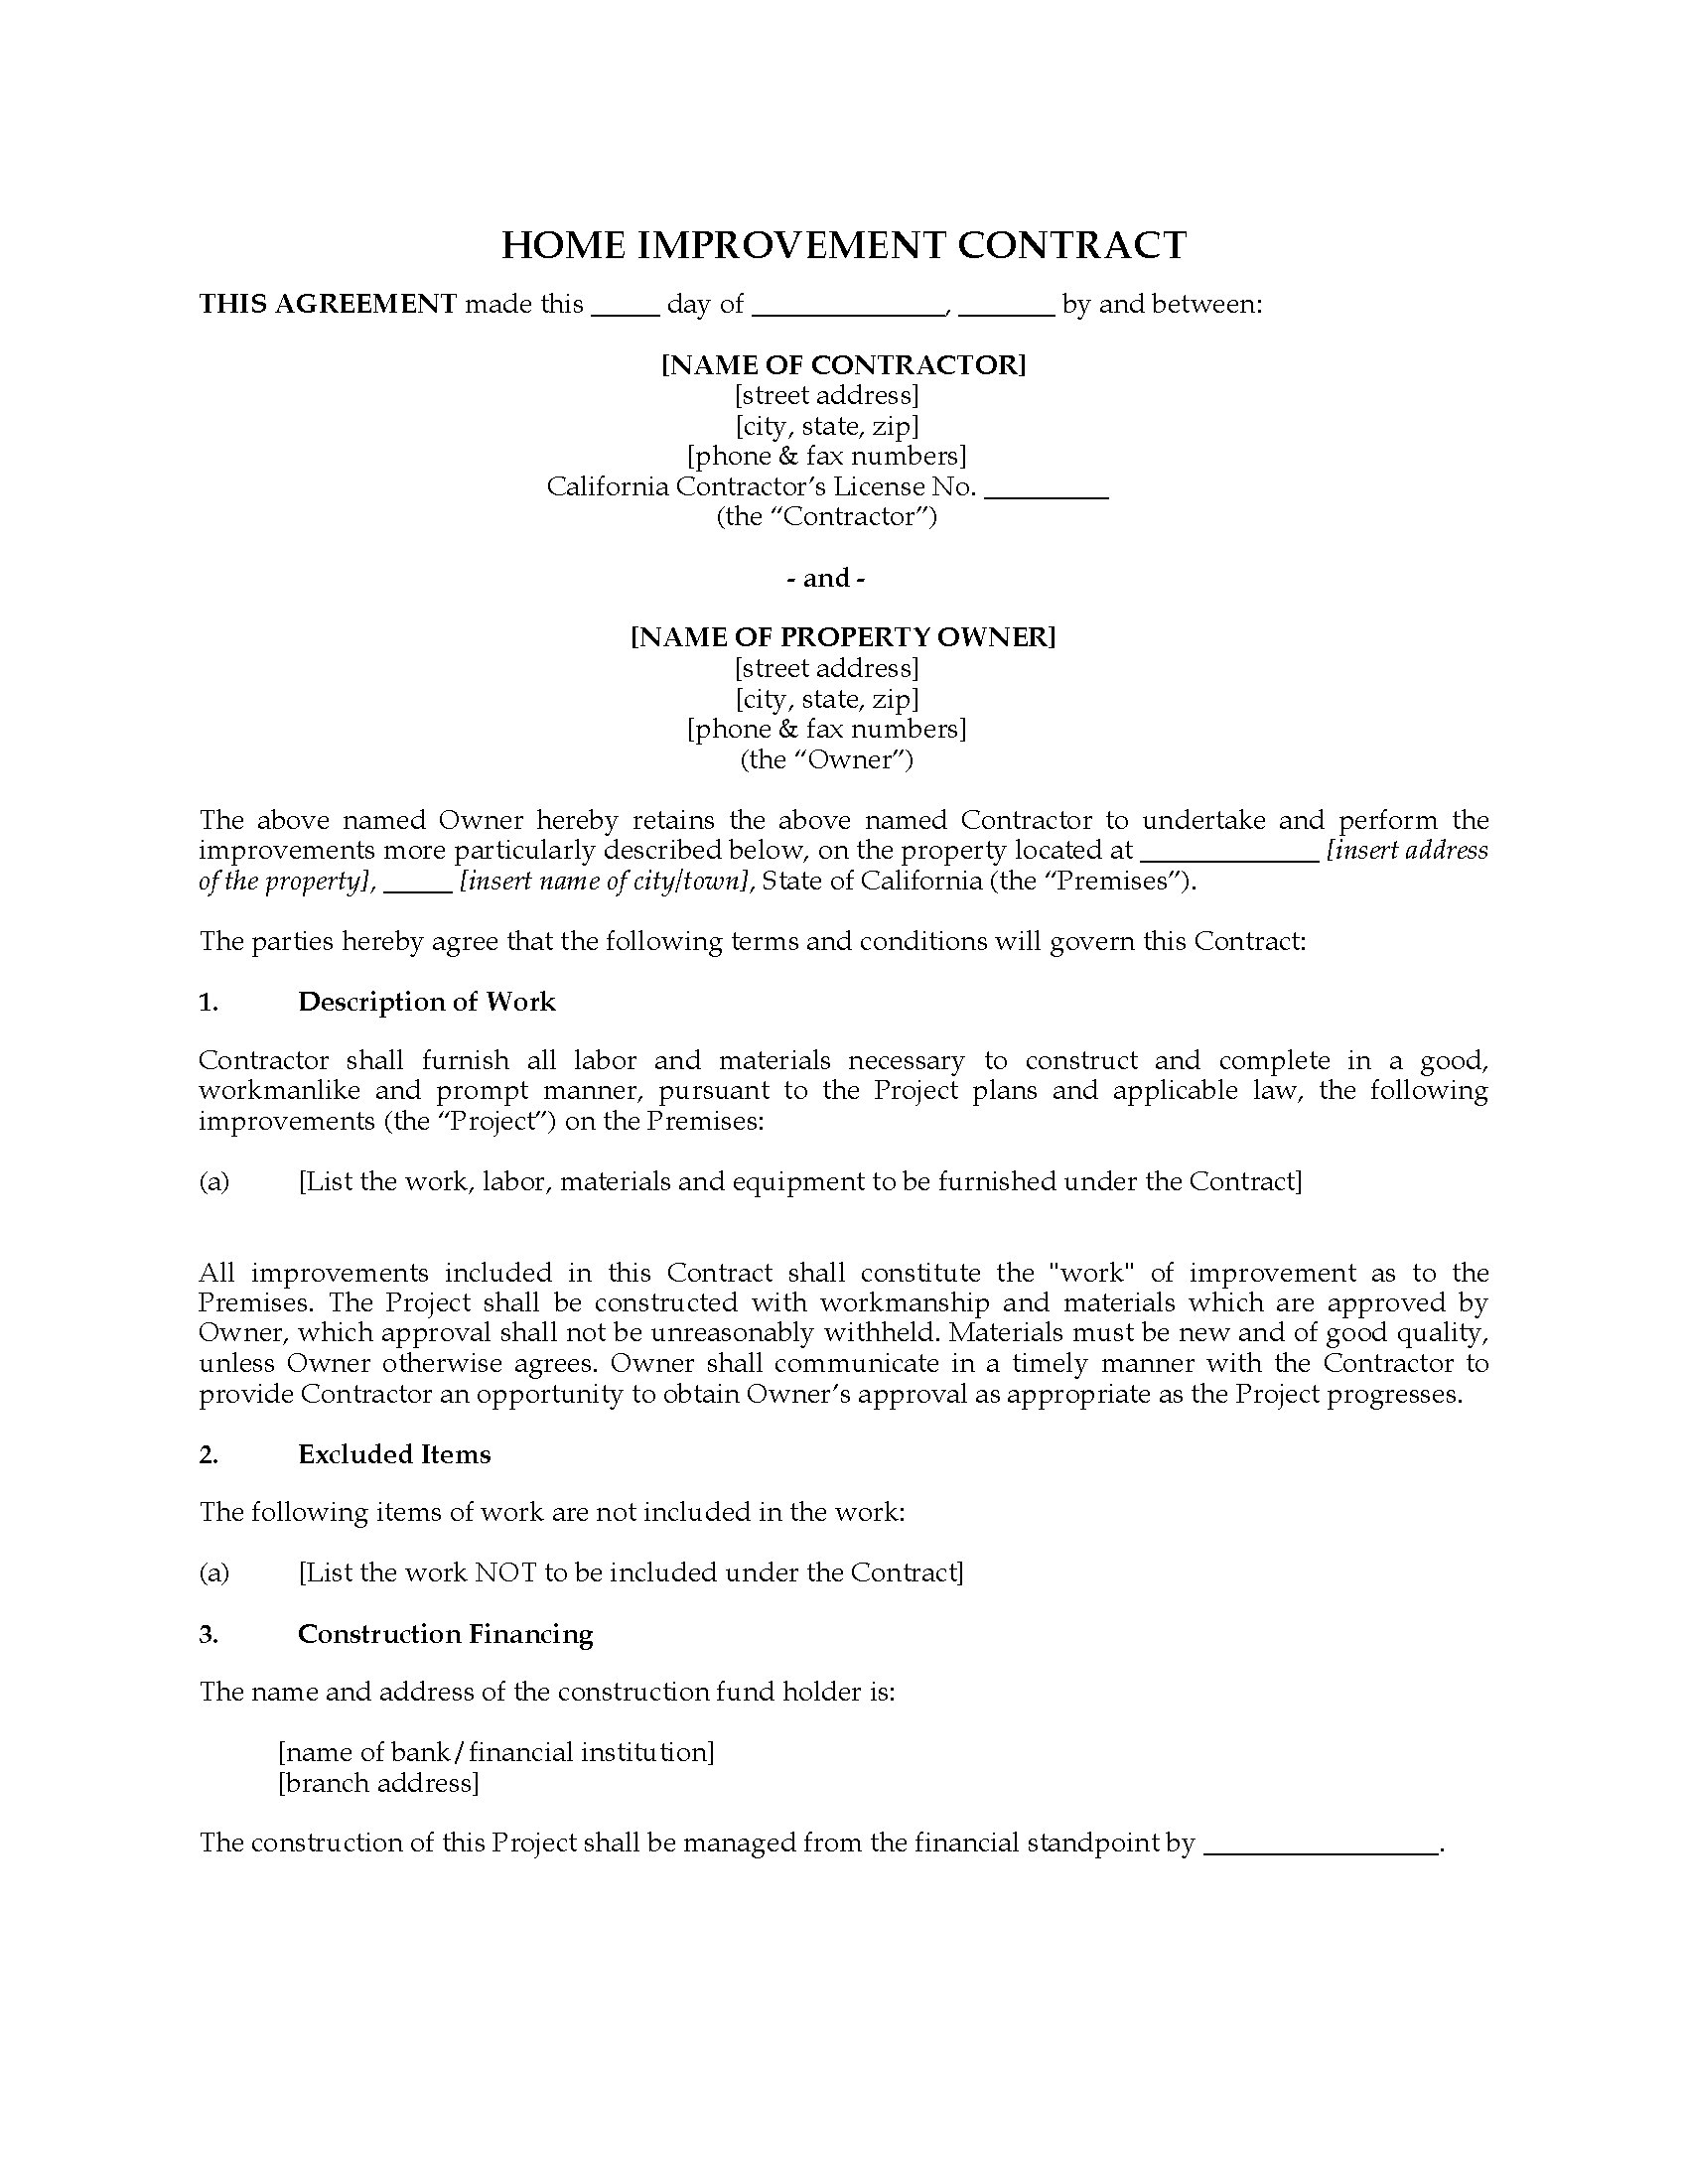 California Home Improvement Contract | Legal Forms and Business ...